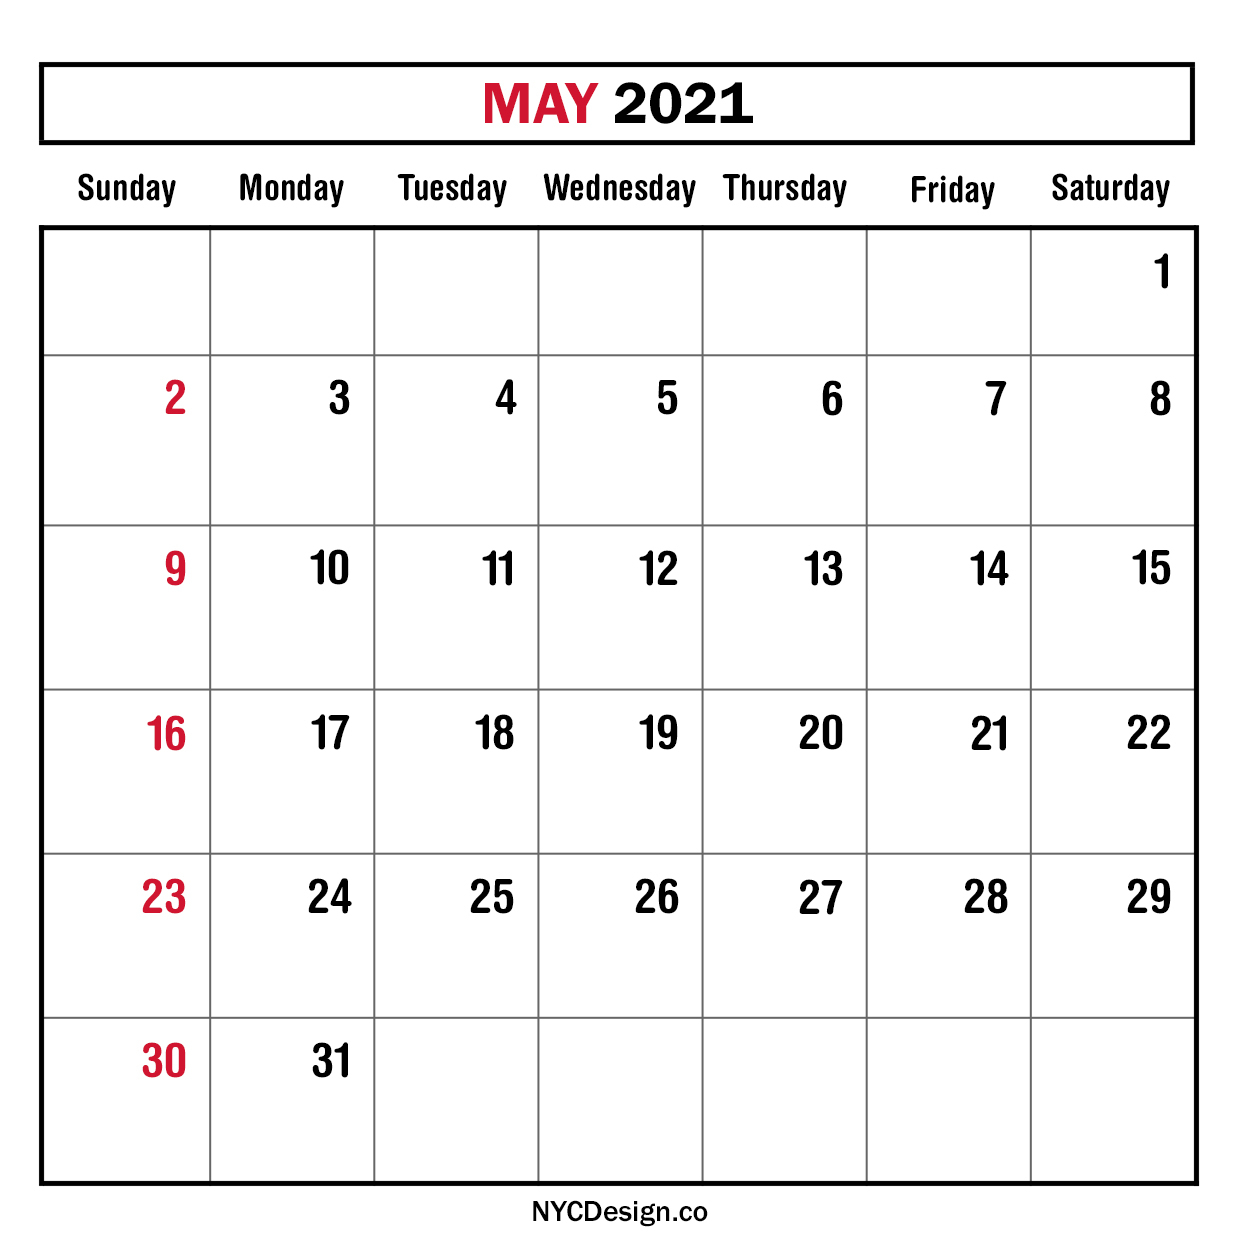 Monthly Calendar May 2021, Monthly Planner, Printable Free